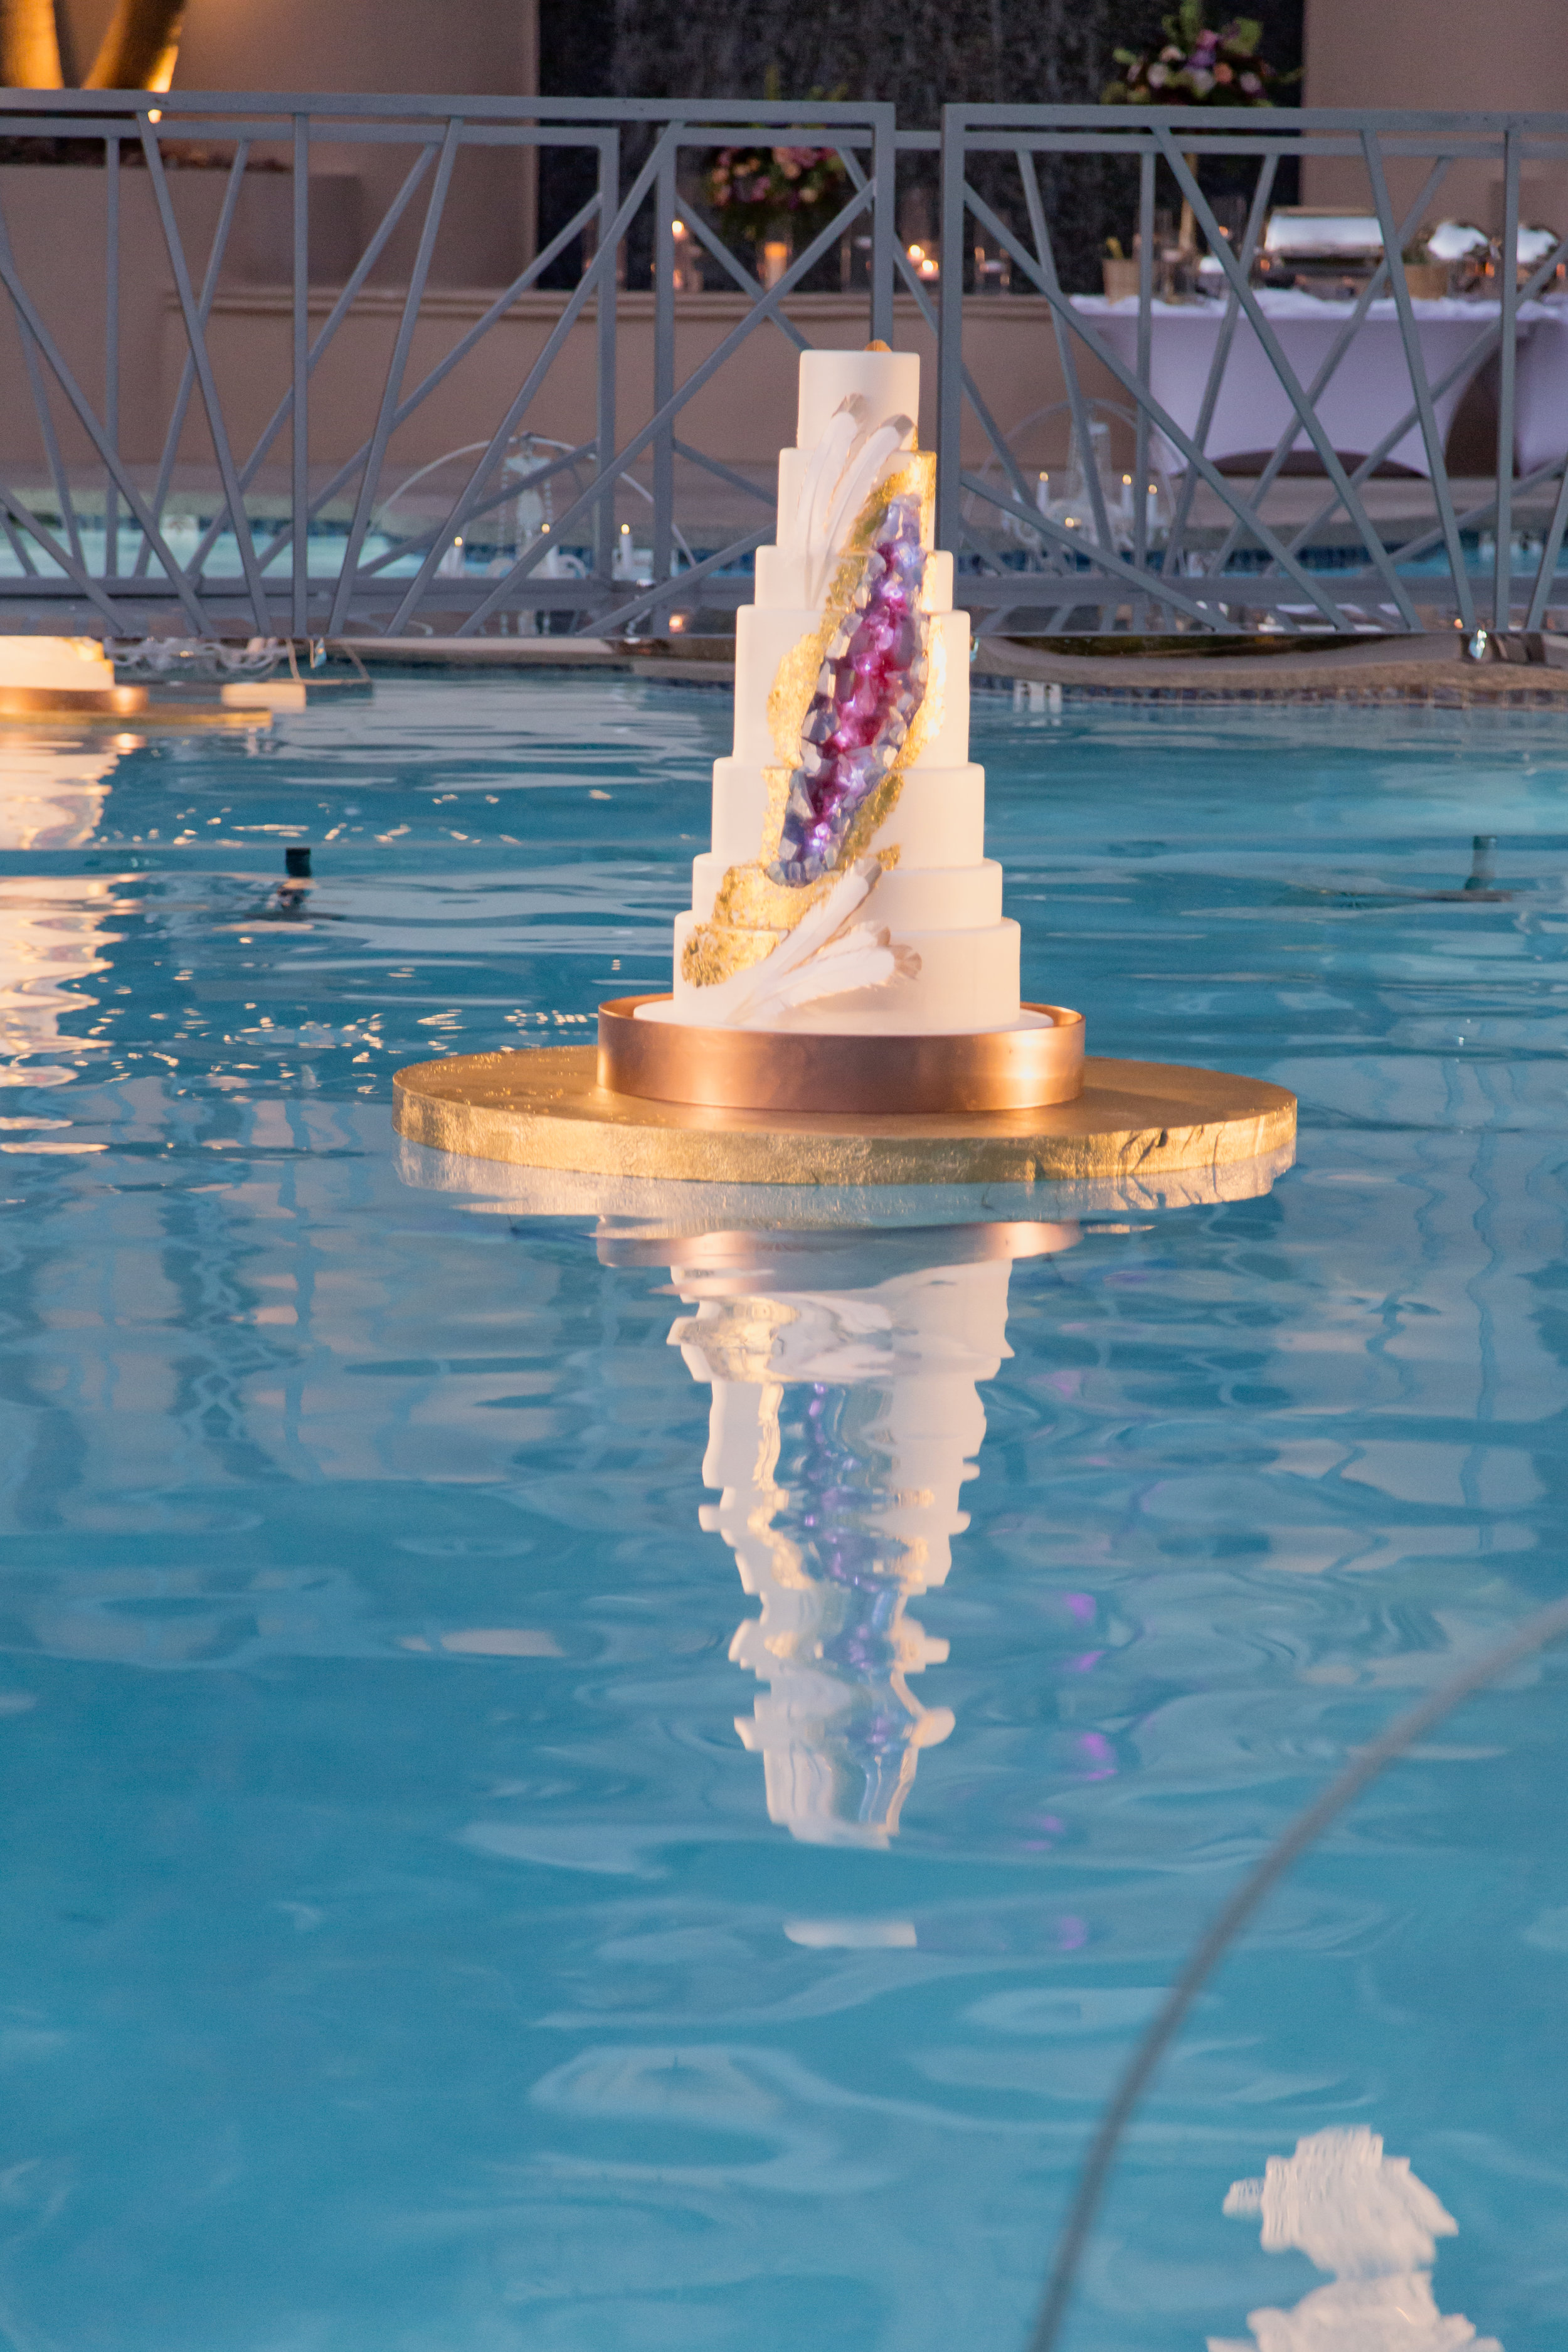 Geode wedding cake floating in pool at Four Seasons.Destination Wedding Planner  Andrea Eppolito ·Photos by  Adam Frazier Photography ·Floral and Decor by  Destinations by Design · Lighting by  LED Unplugged ·Venue · Invitations  Ceci New York  · Menus by  Alligator Soup